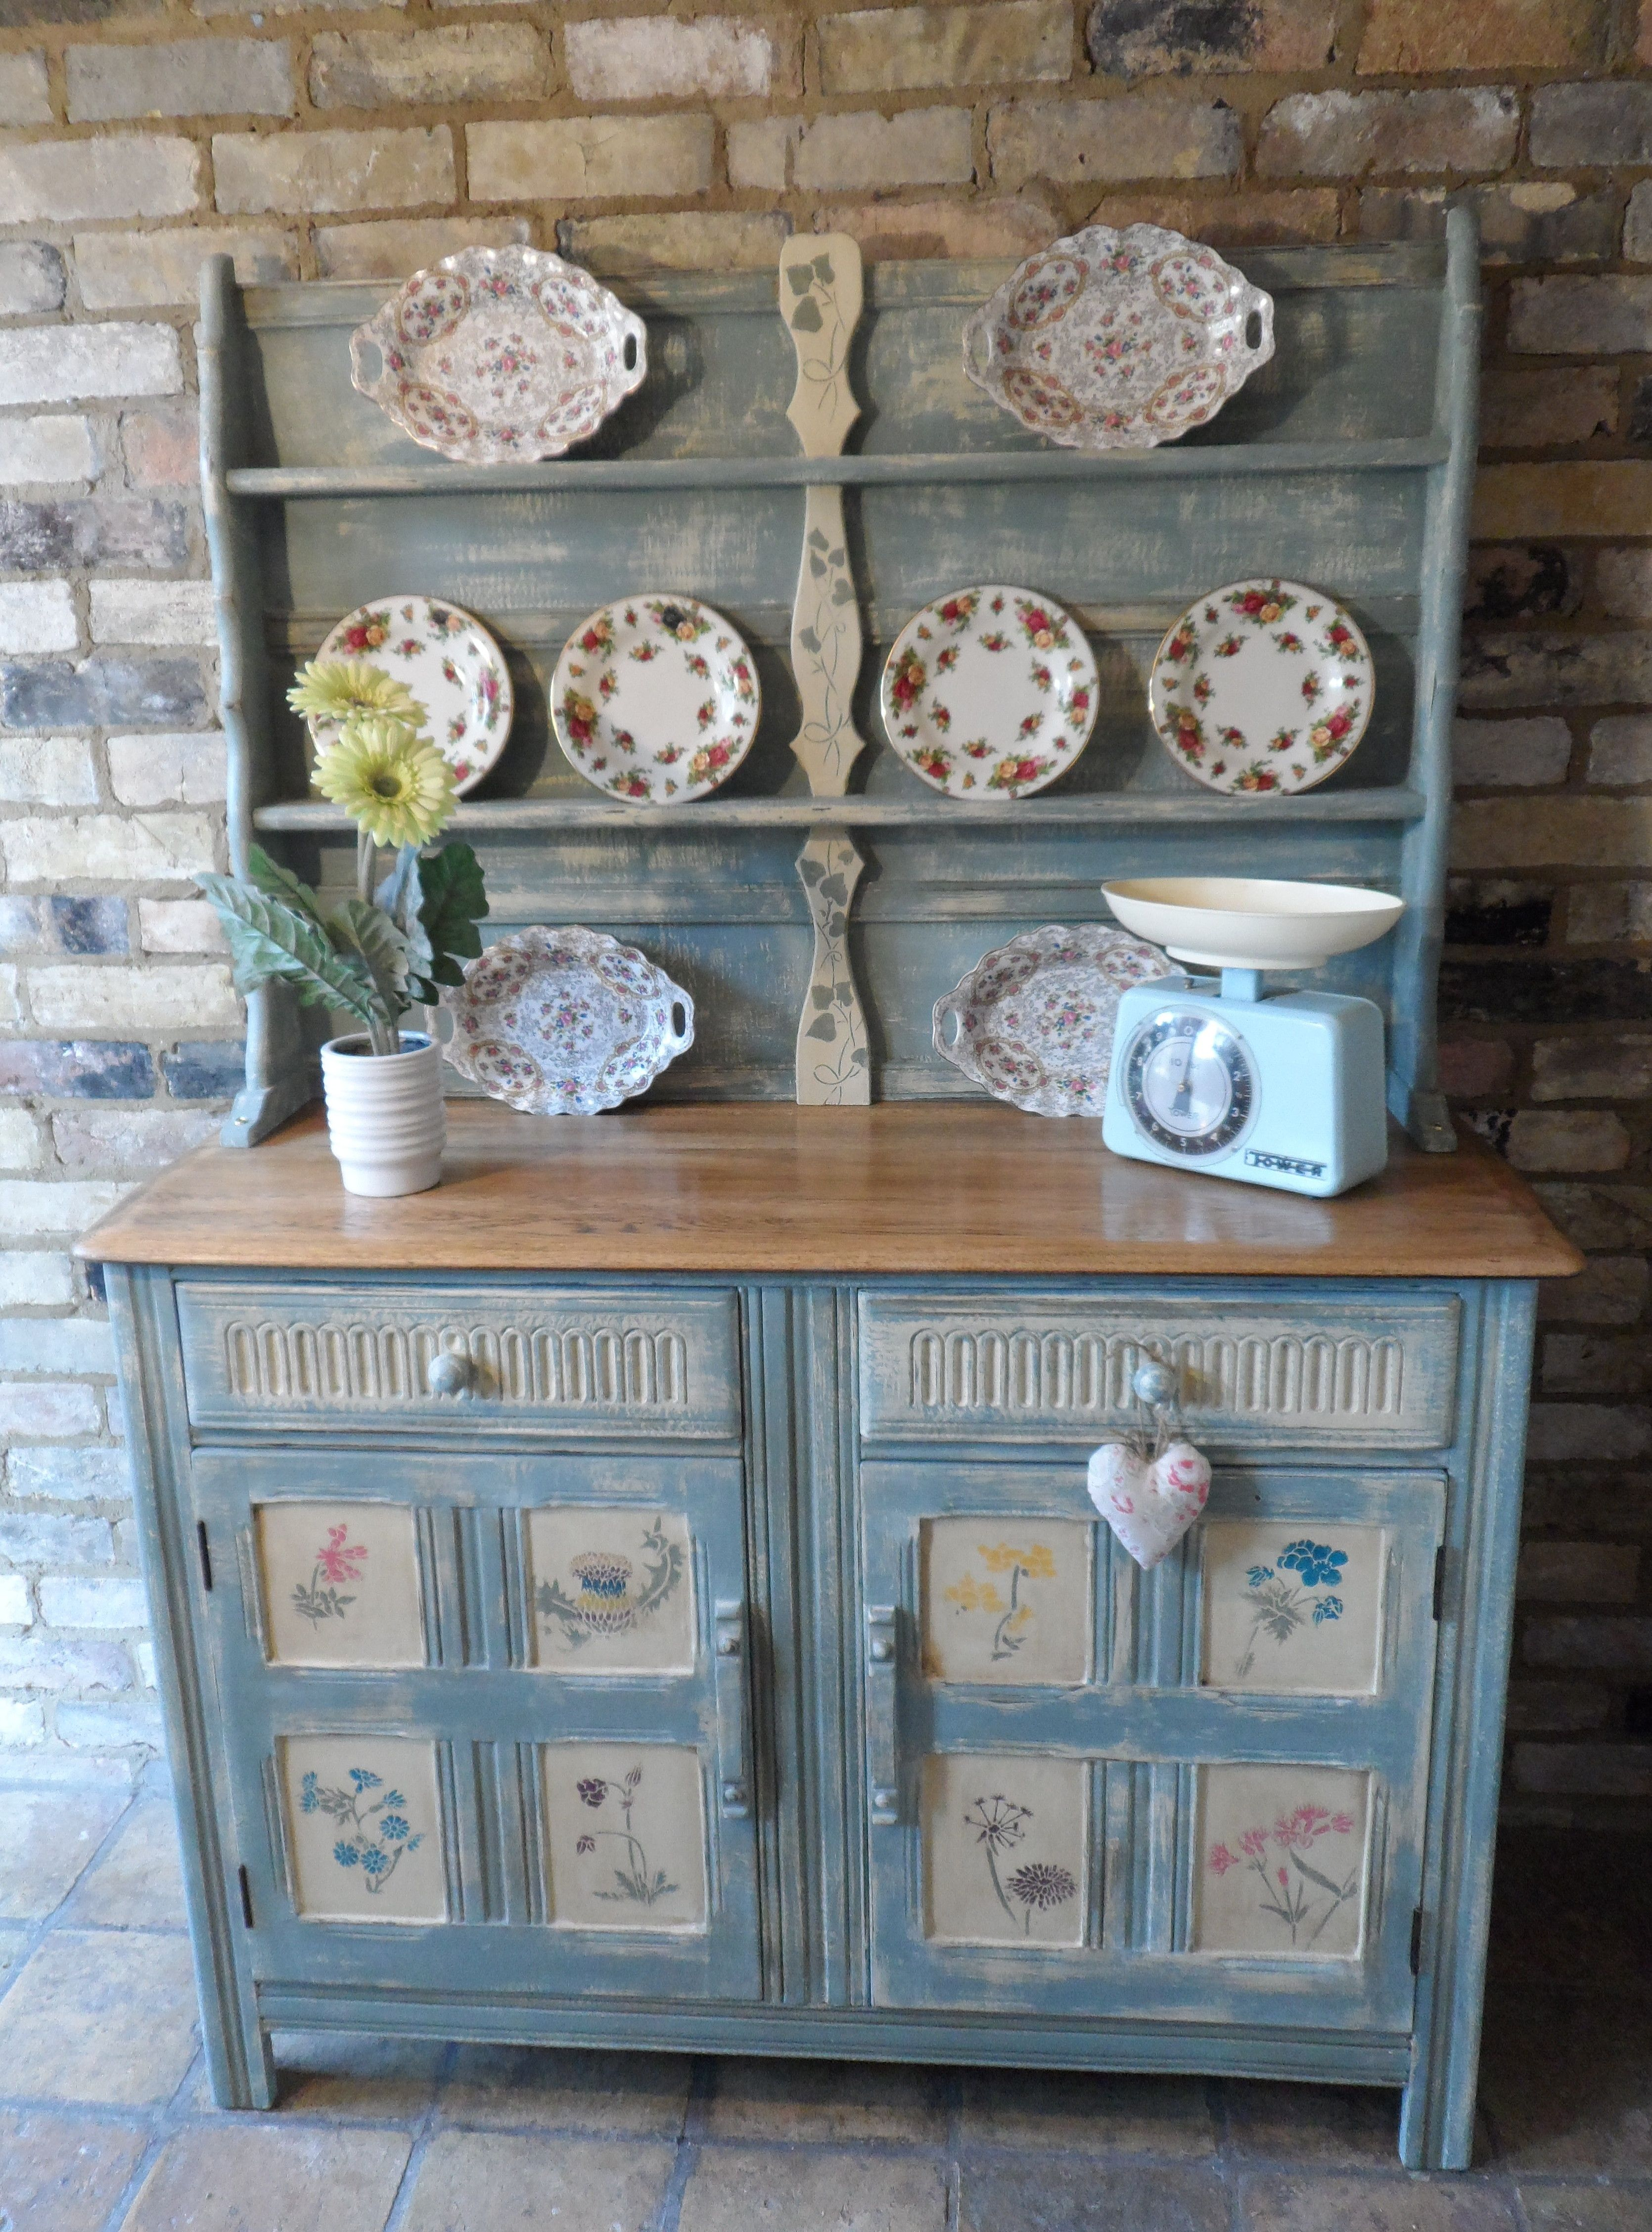 Annie Sloan painted Ercol dresser with wild flowers painted to door